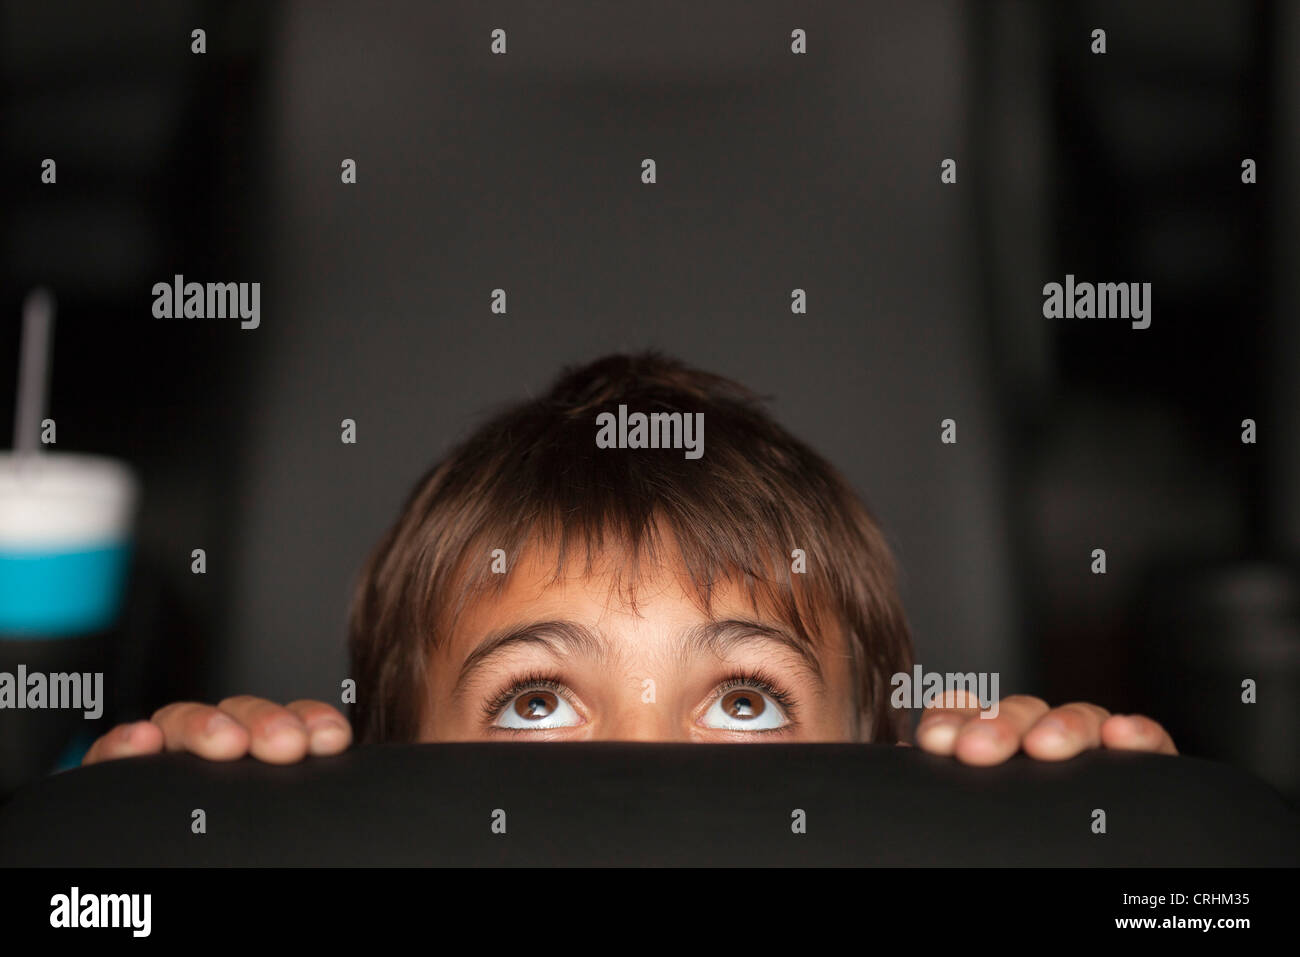 Boy peeking over top of seat during horror movie in theater - Stock Image